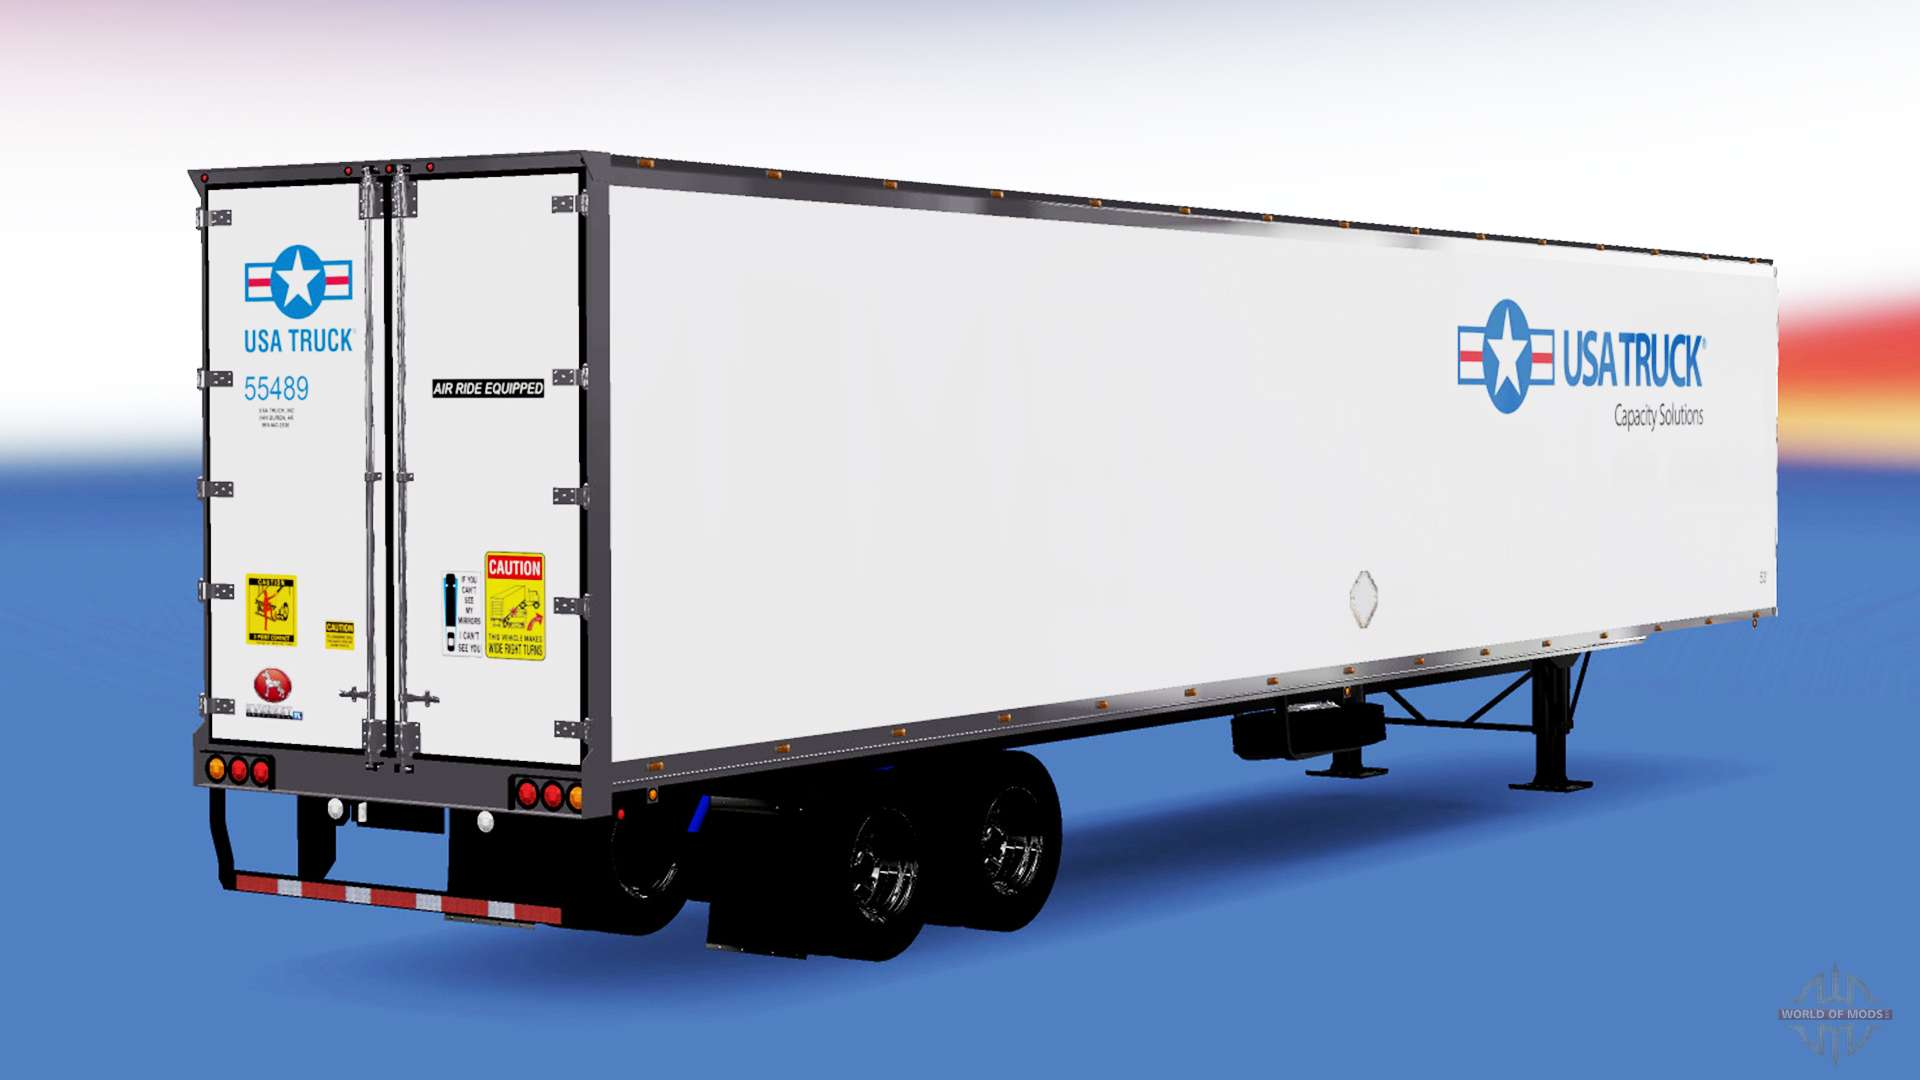 15466 Semi Container Ships besides 13688 Skin Caveira On Tractor Peterbilt 379 further Index additionally 18549 All Metal Semi Trailer Usa Truck furthermore Vehicles. on semi truck tanks